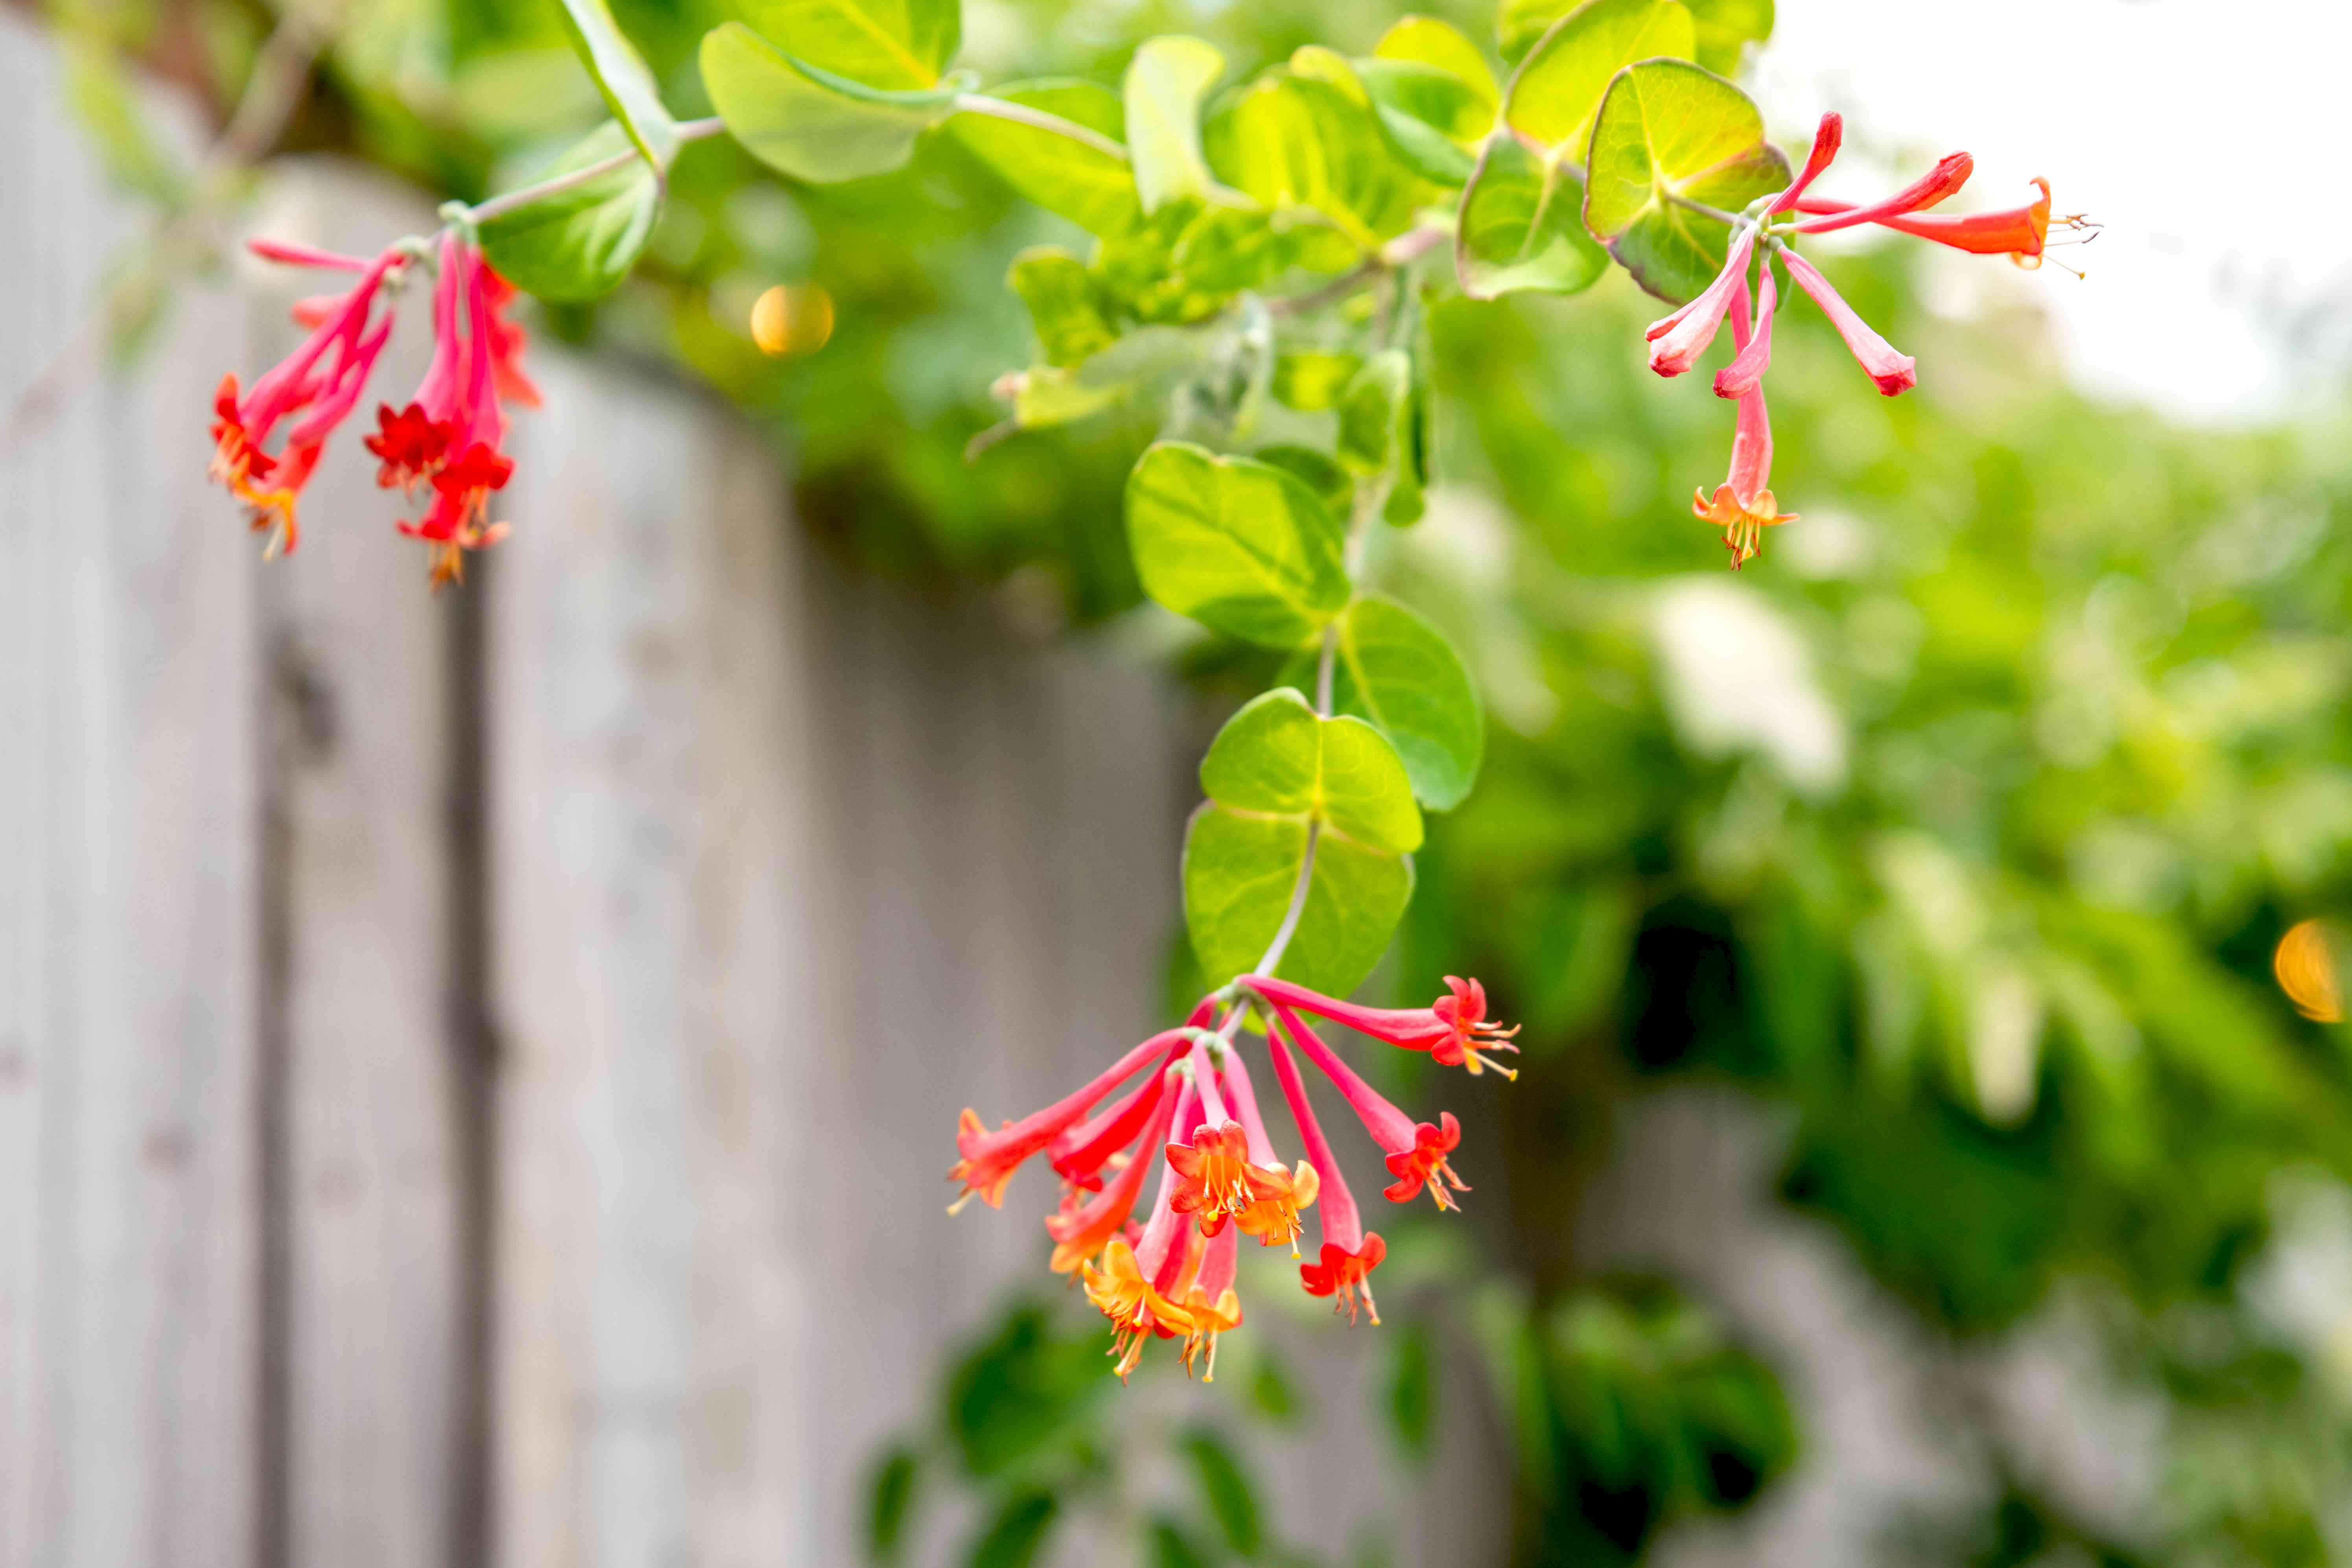 Coral honeysuckle plant with red tubular flowers on end of branch hanging over fence